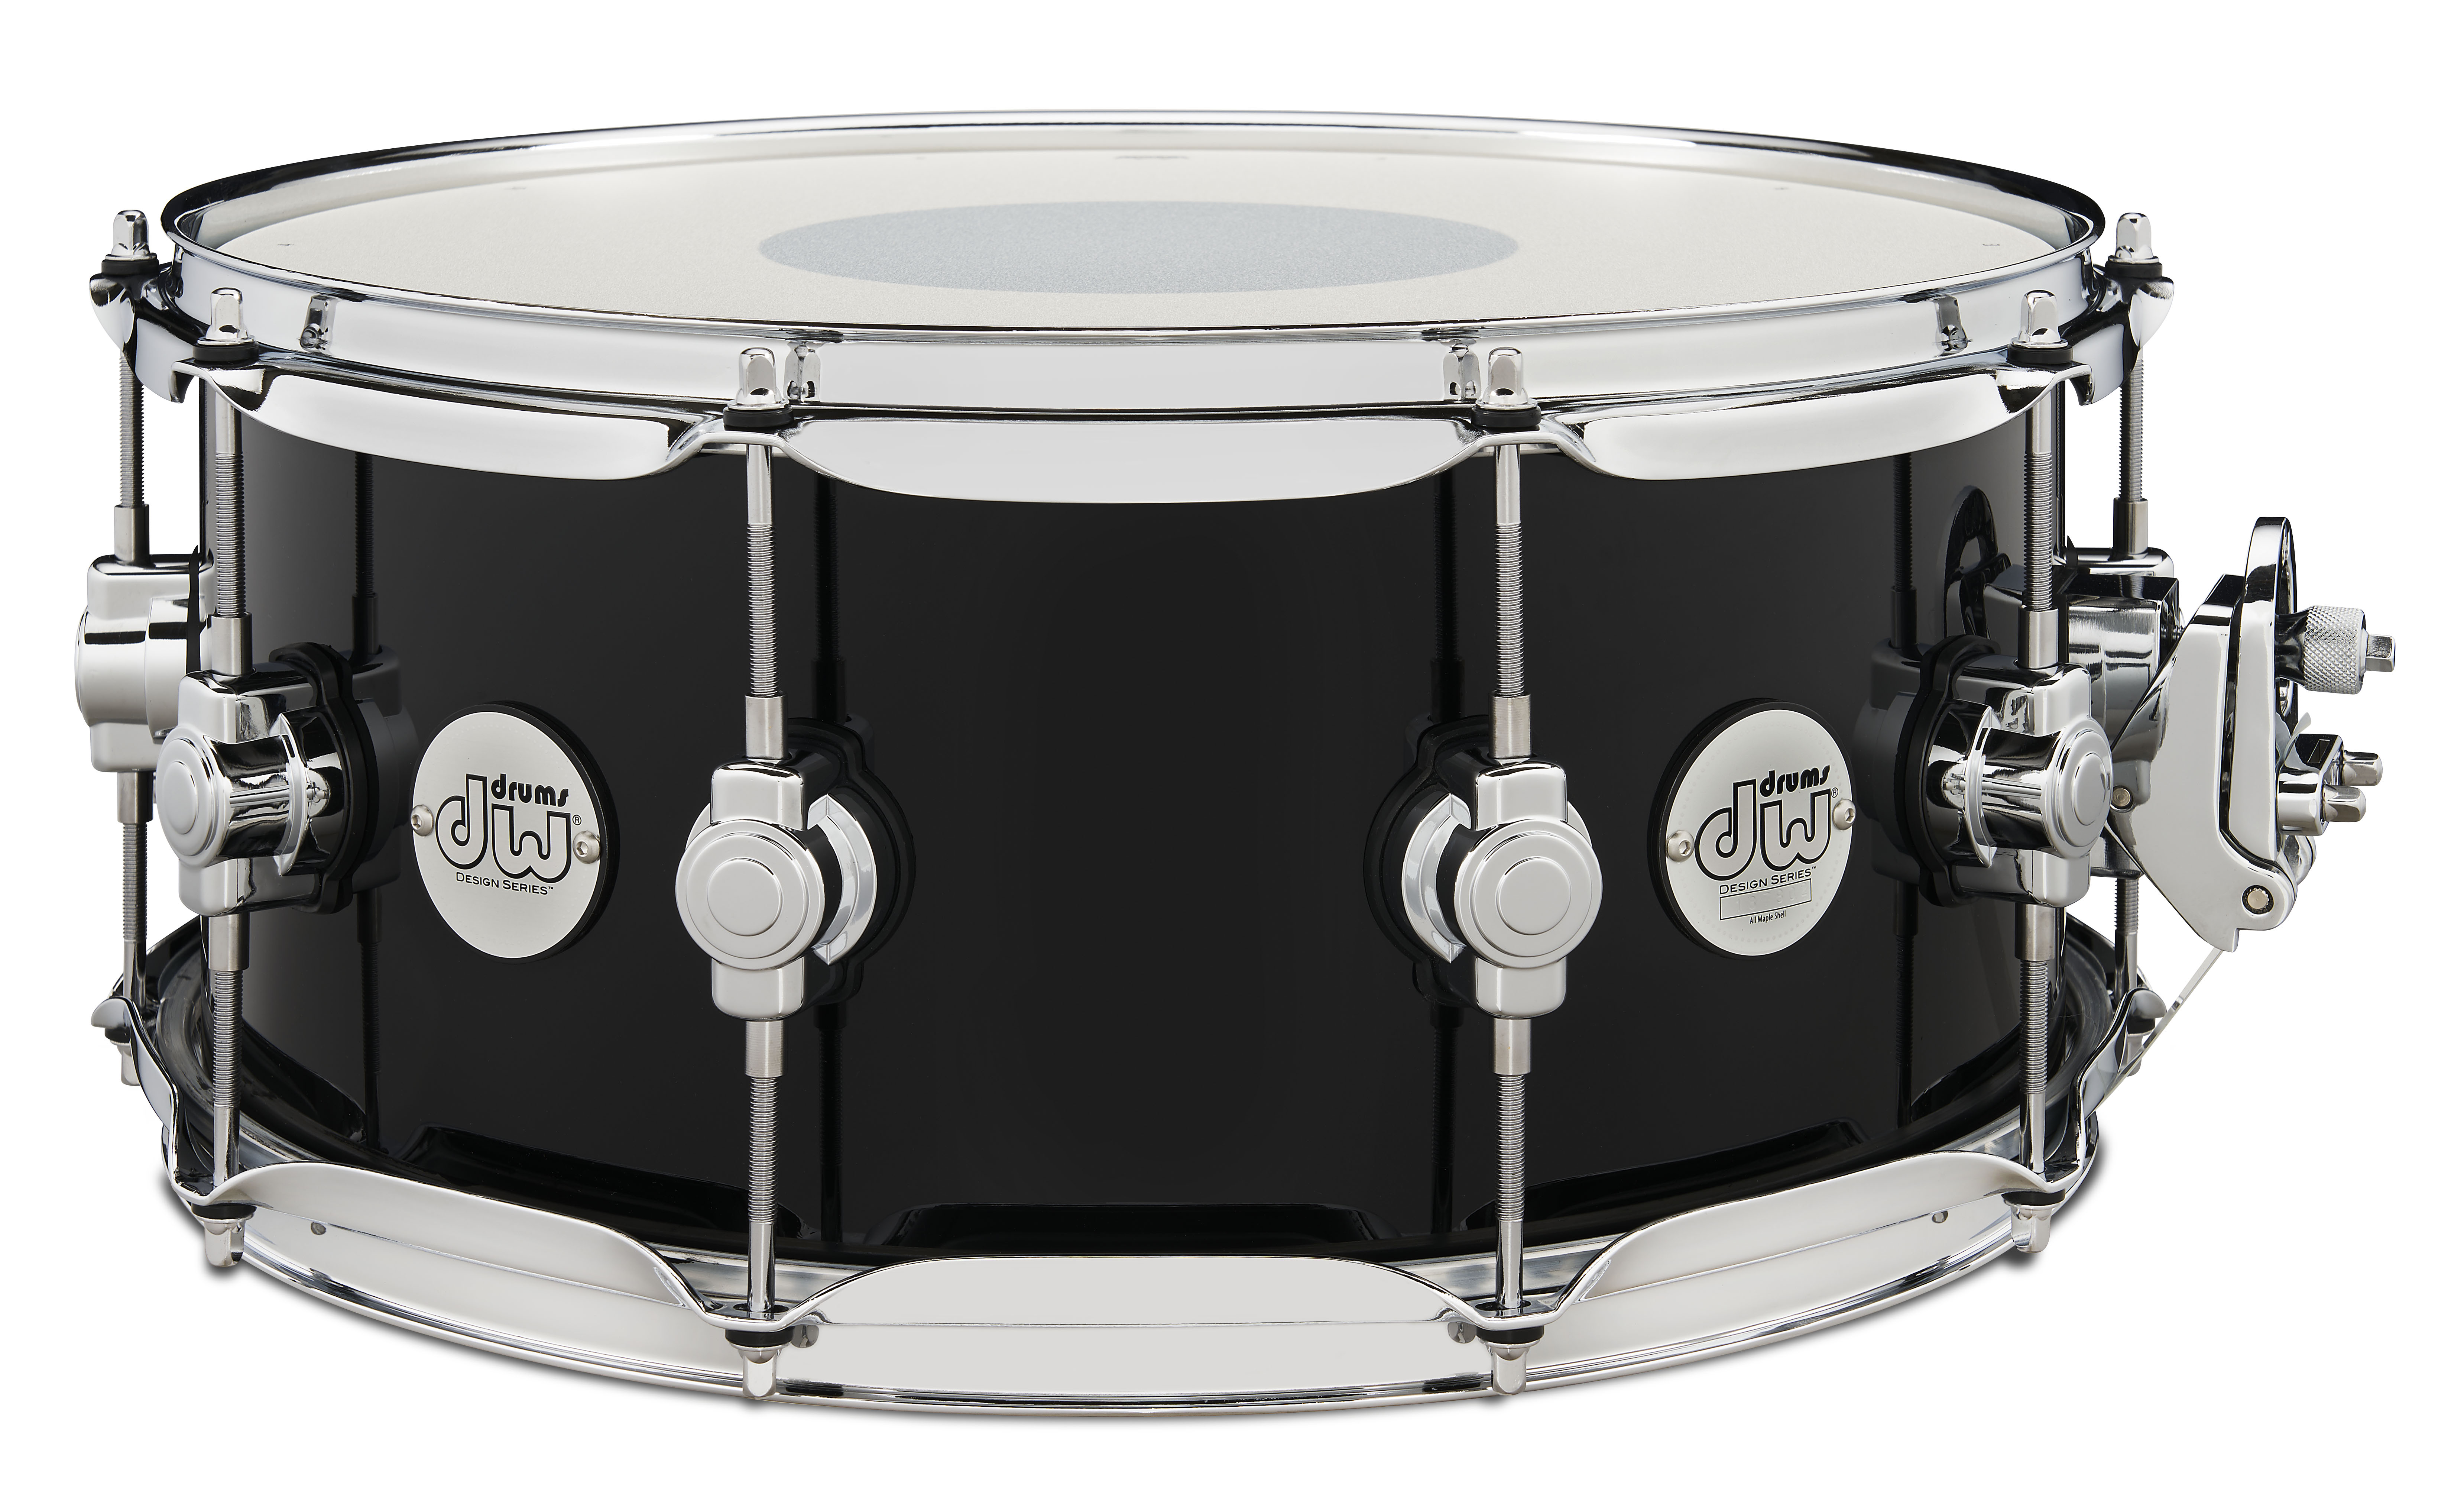 DW Design Series Piano Black Limited Edition Snare Drum